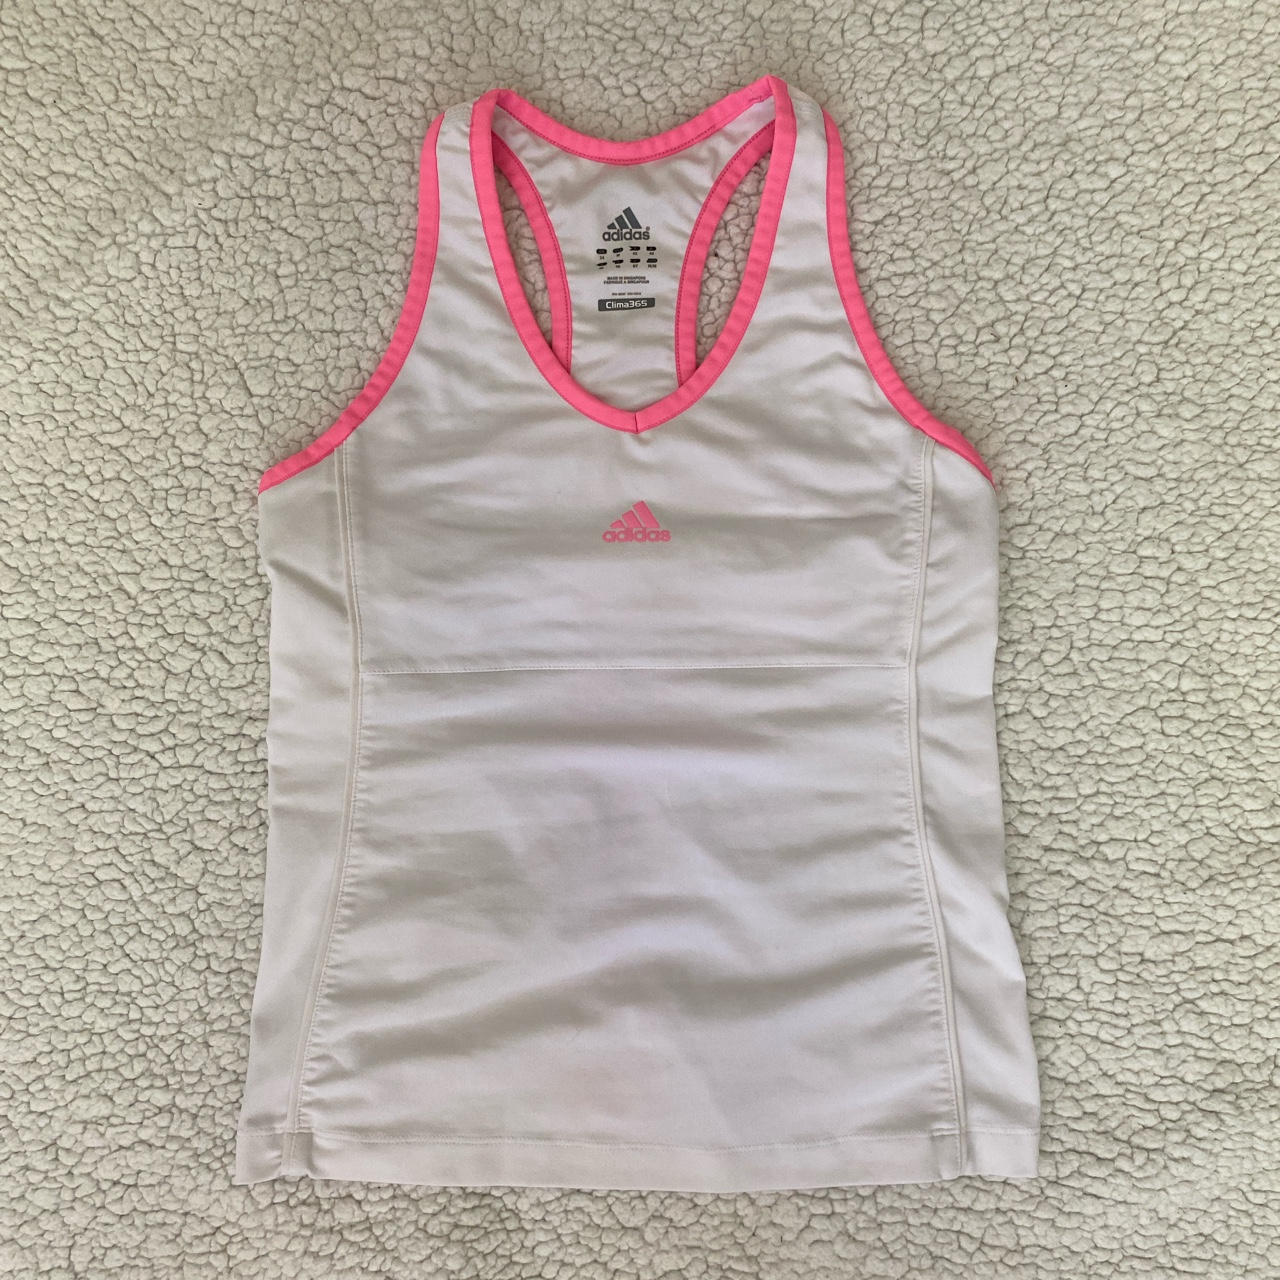 Girly Hot Pink and White Adidas Activewear Racerback Top💕